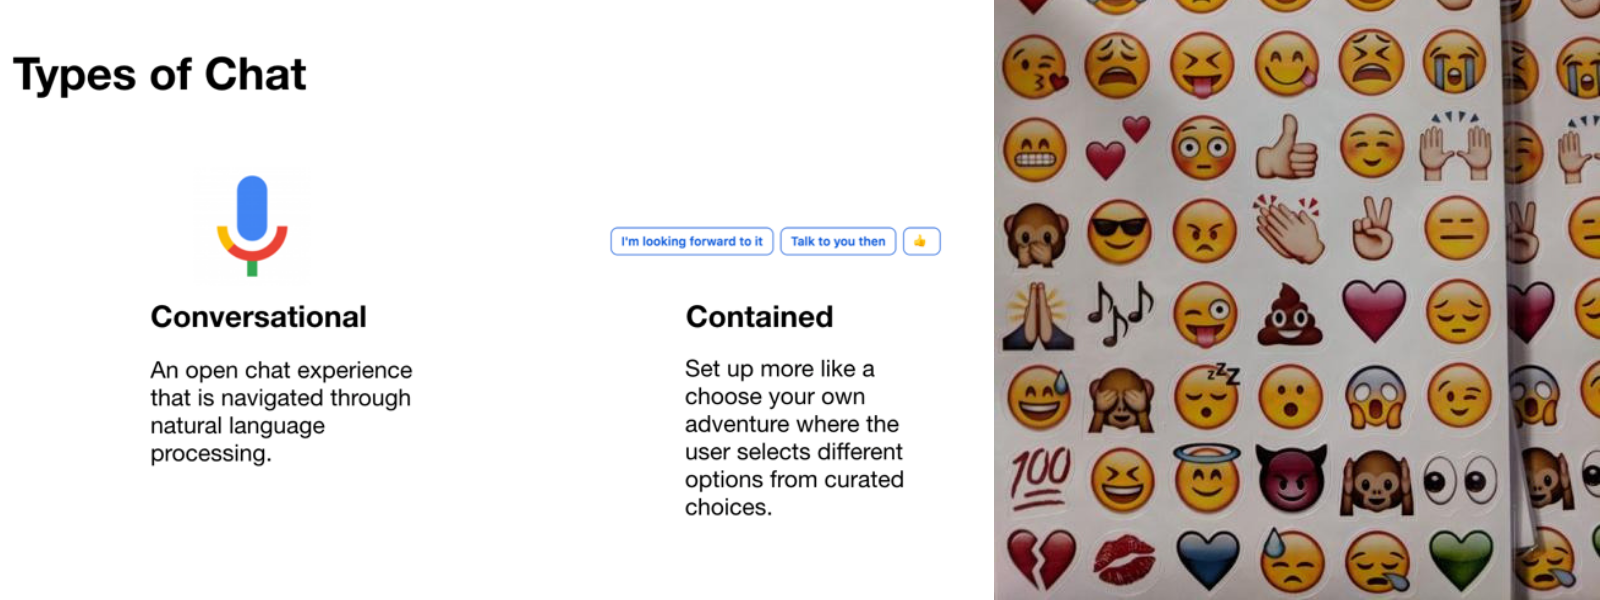 screen grab of types of chat and picture of emoji stickers